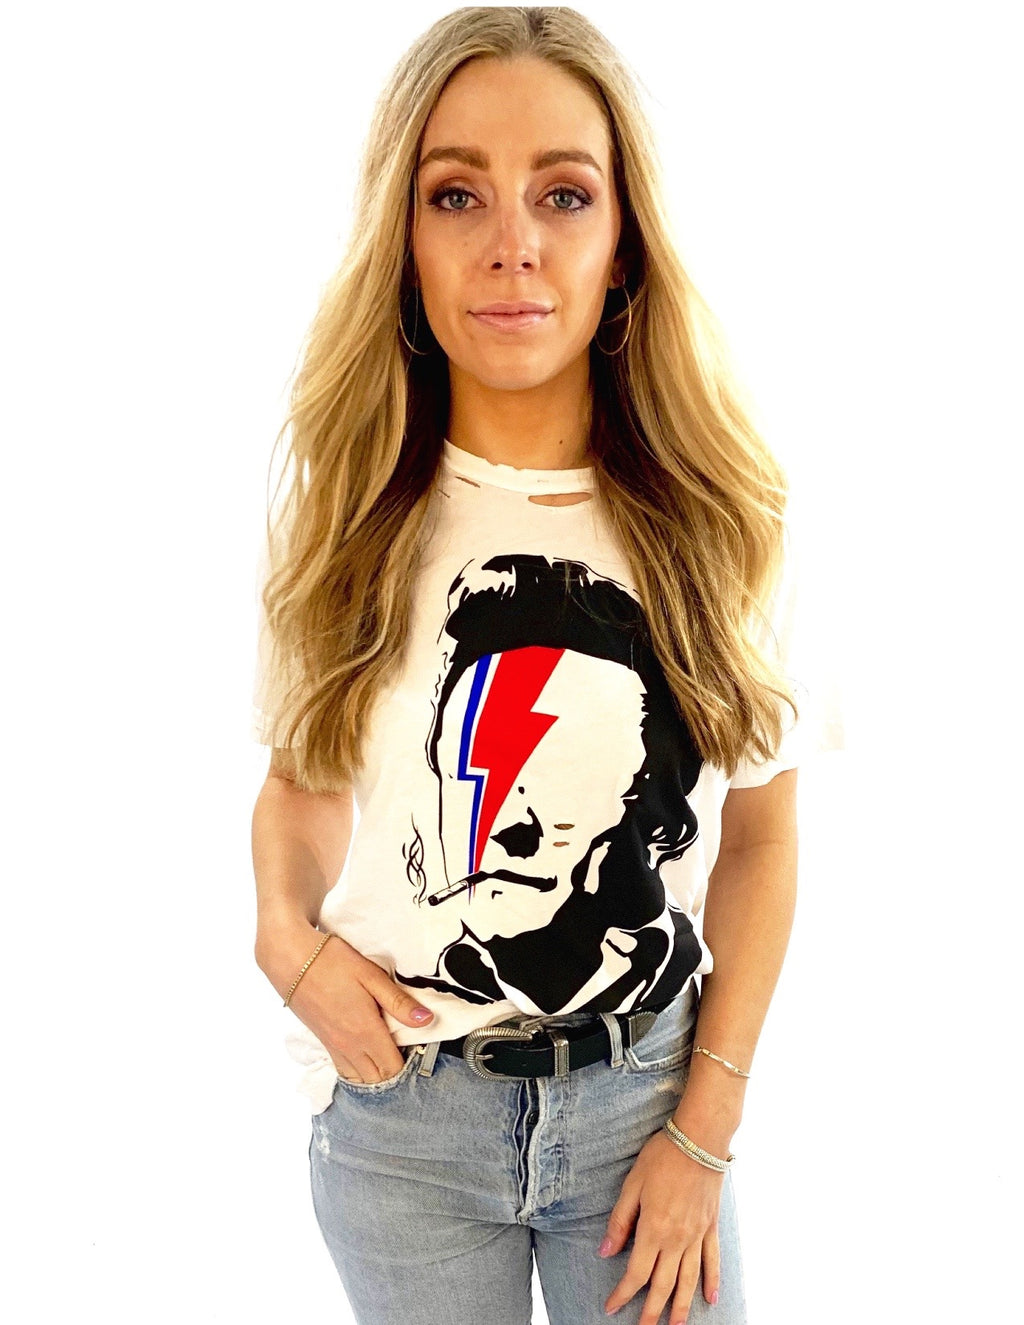 Cash Pop Art Distressed Vintage T-Shirt